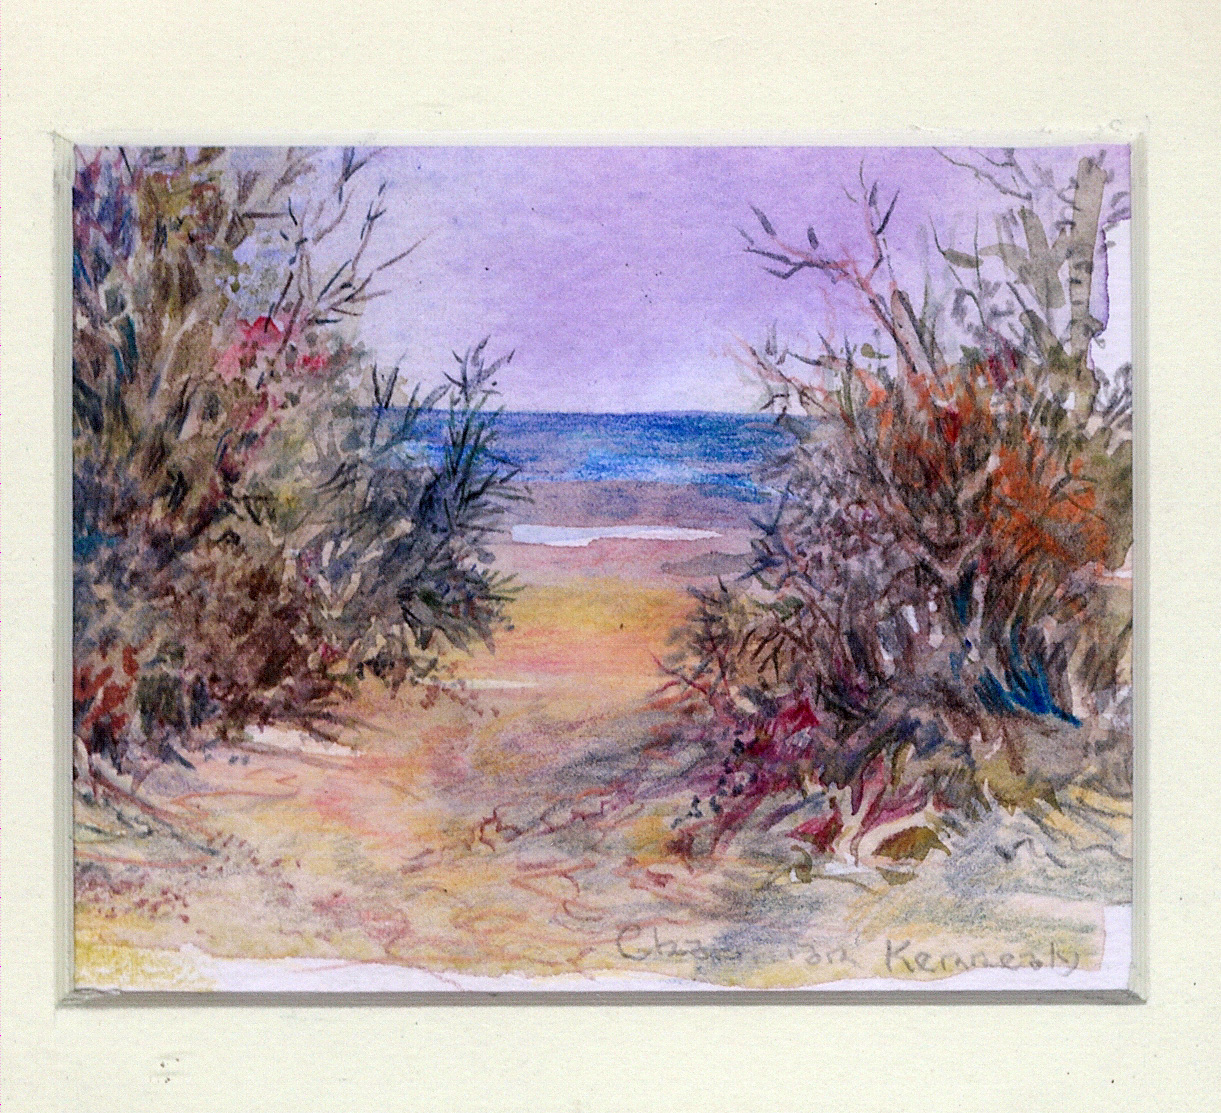 81 Beach, Eastern Cape by Charmian Kennealy - Mixed Media